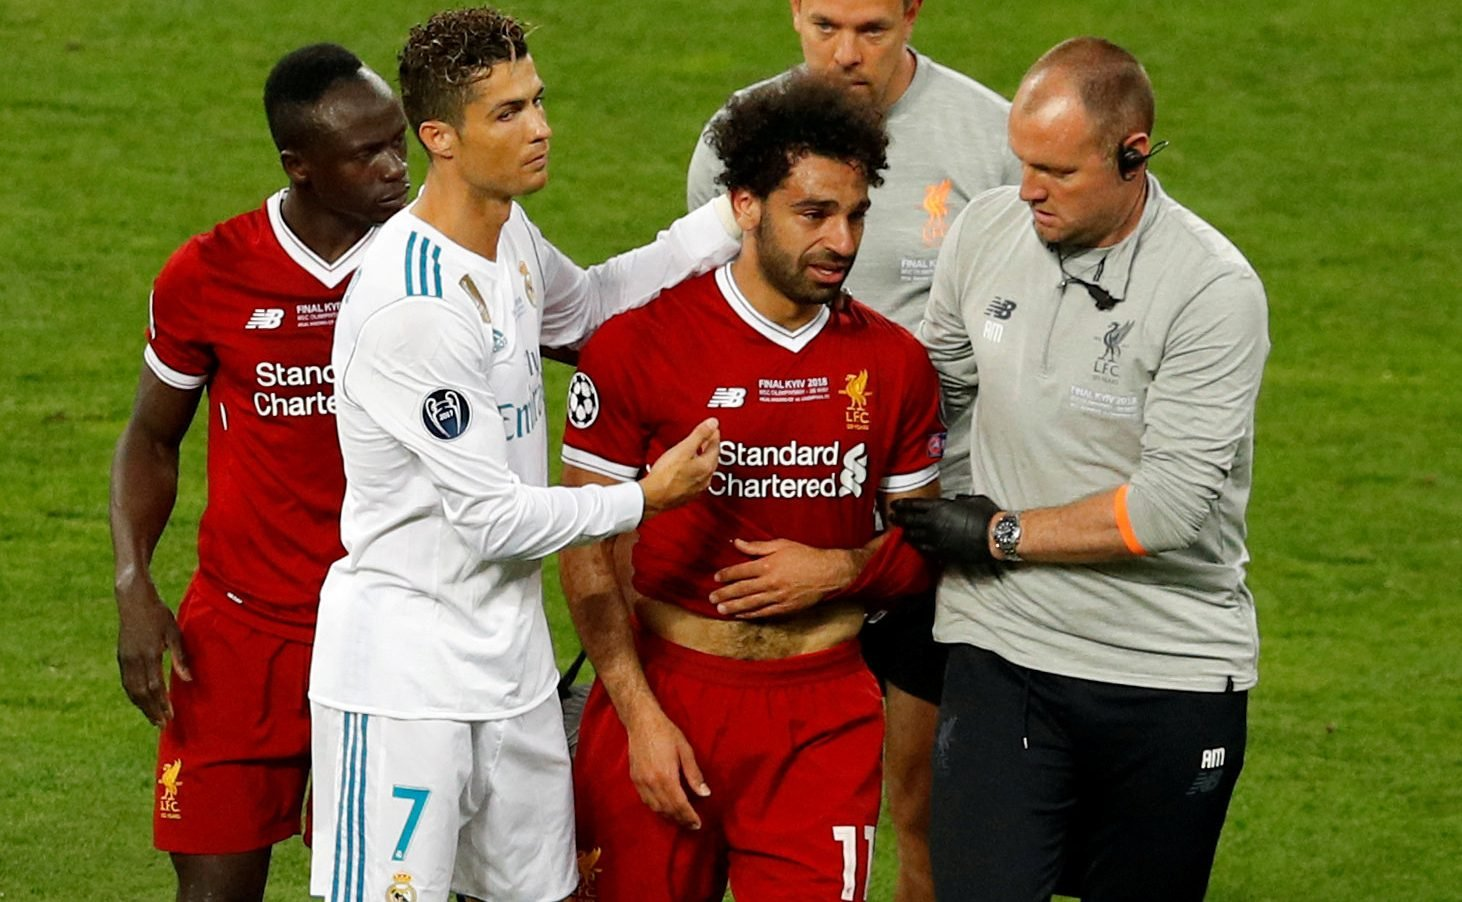 salah lfc final e1559314380651 - Sissoko v Henderson, semi-final heroes: How the Champions League final could be decided